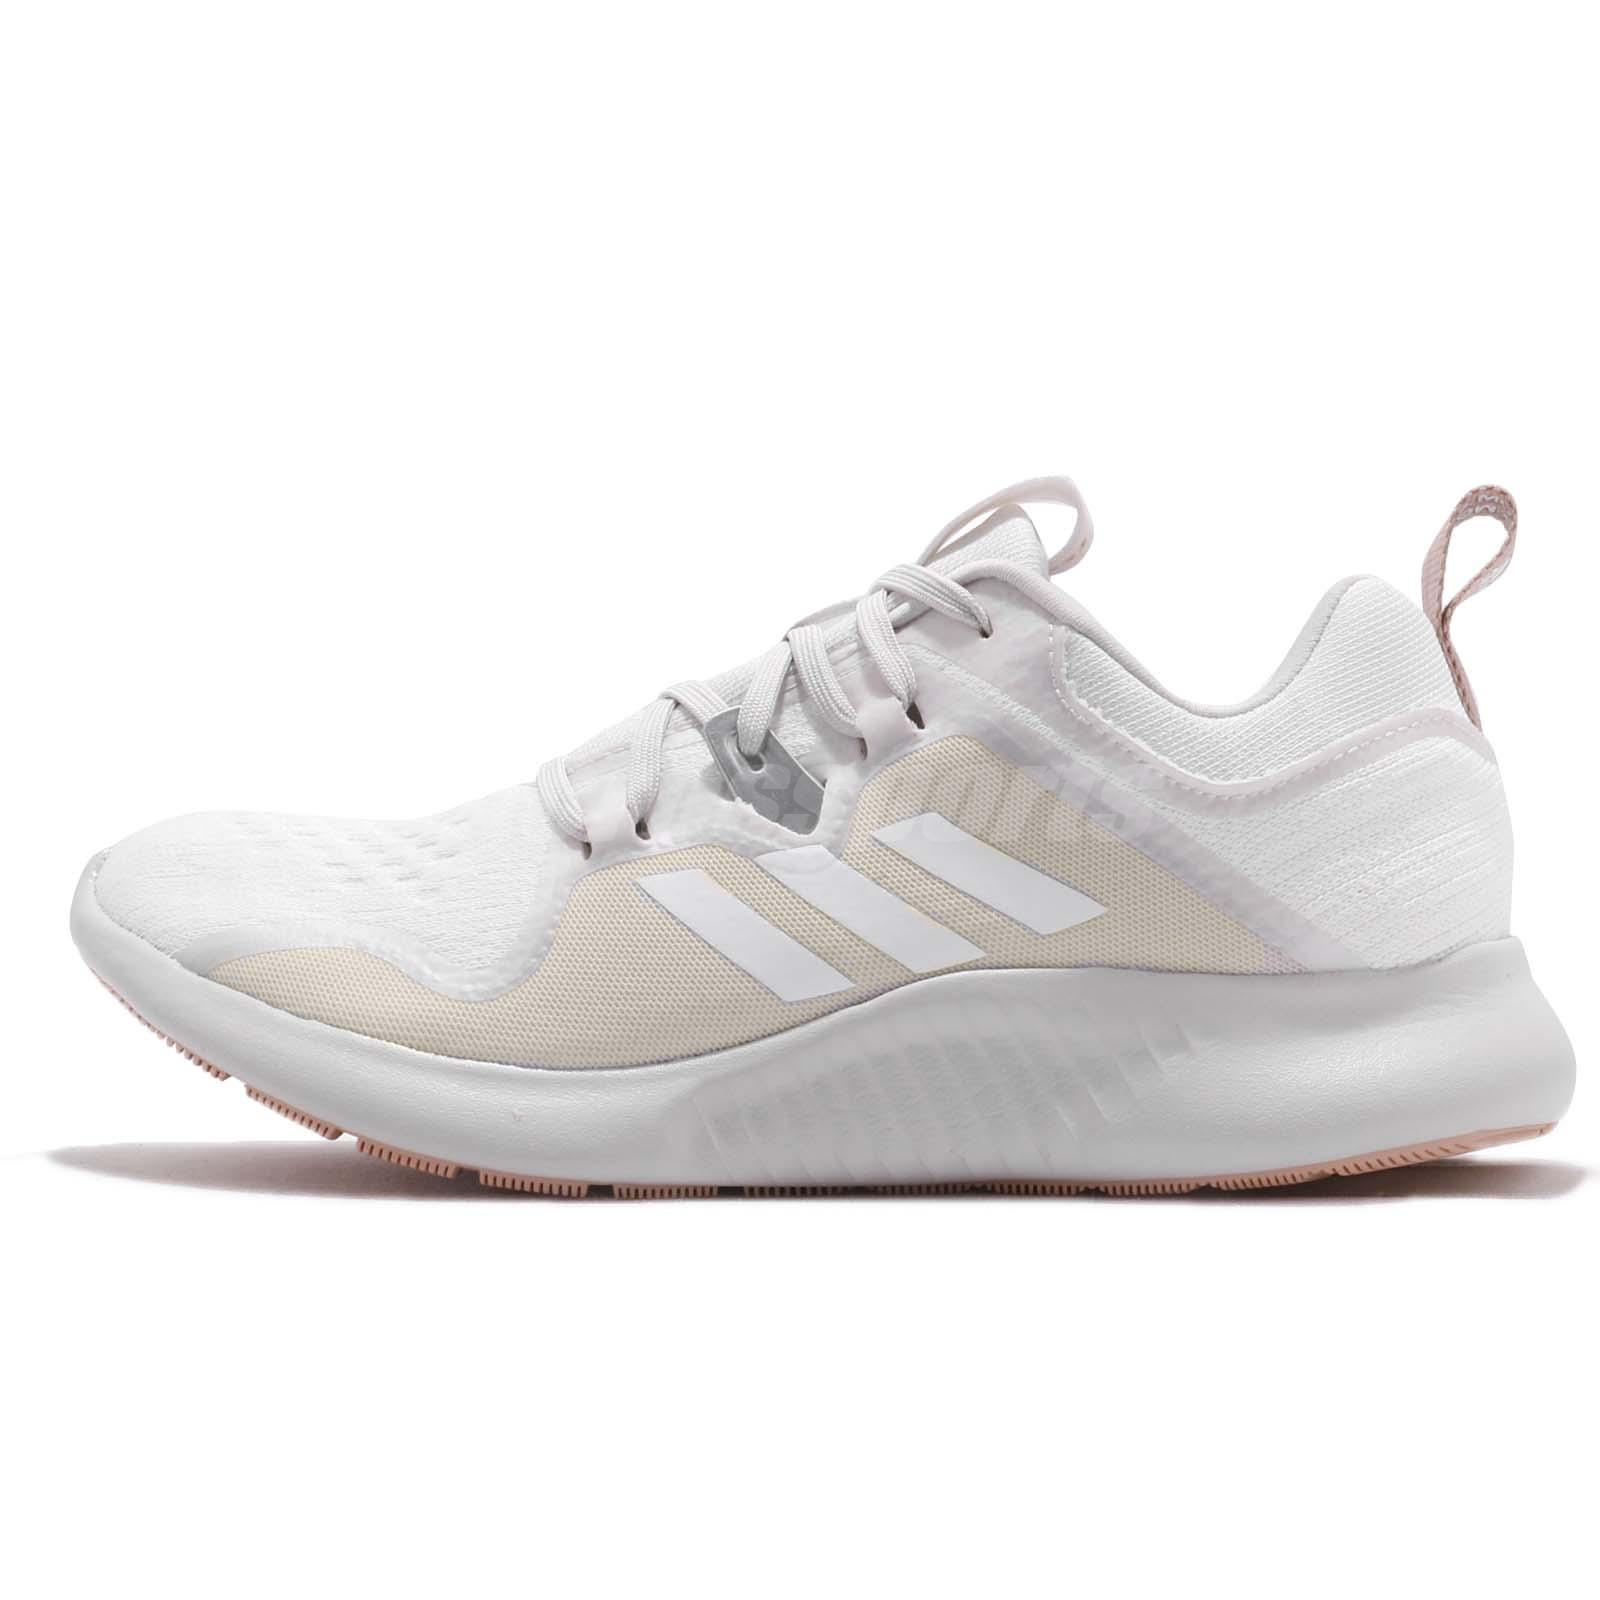 Details about adidas Edgebounce W White Grey Womens Running Shoes Runner Sneakers AC8116